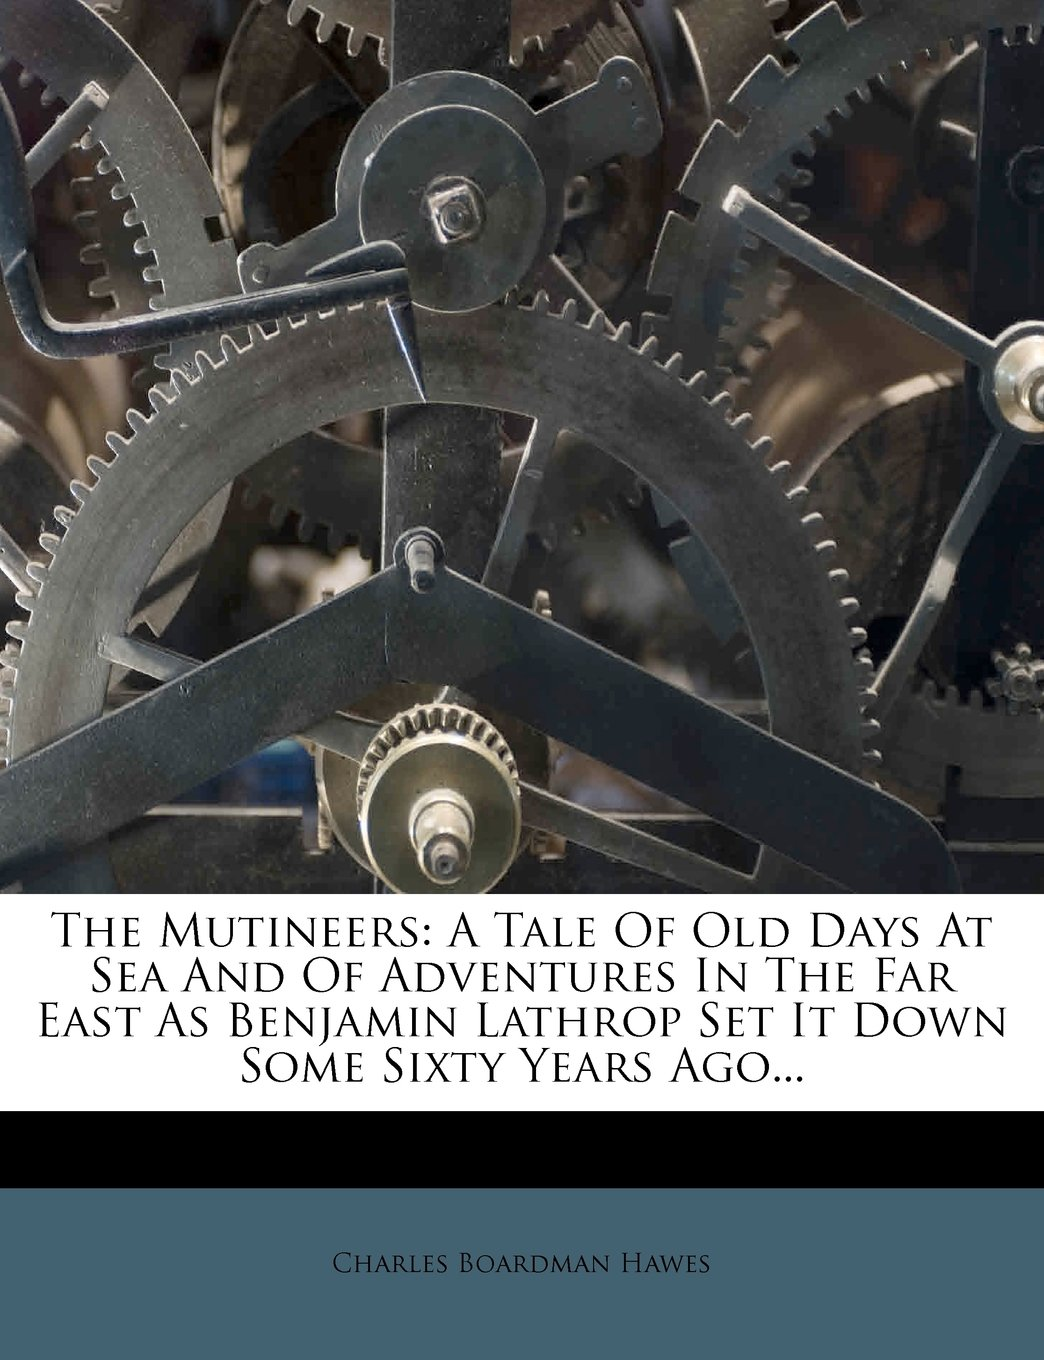 The Mutineers: A Tale Of Old Days At Sea And Of Adventures In The Far East As Benjamin Lathrop Set It Down Some Sixty Years Ago... pdf